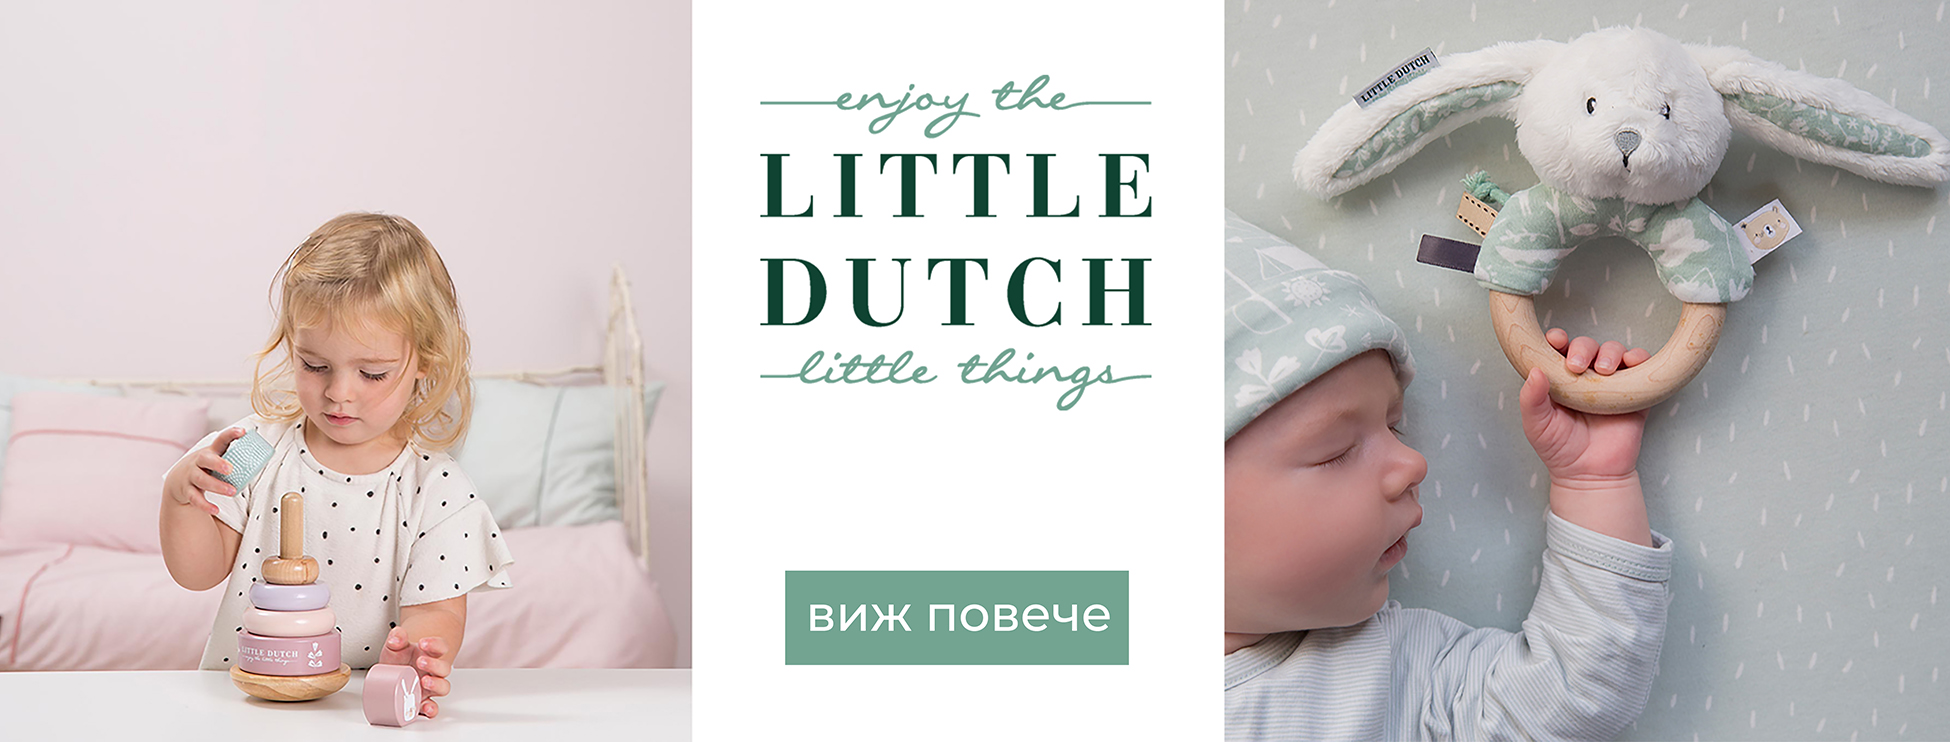 little-dutch-2